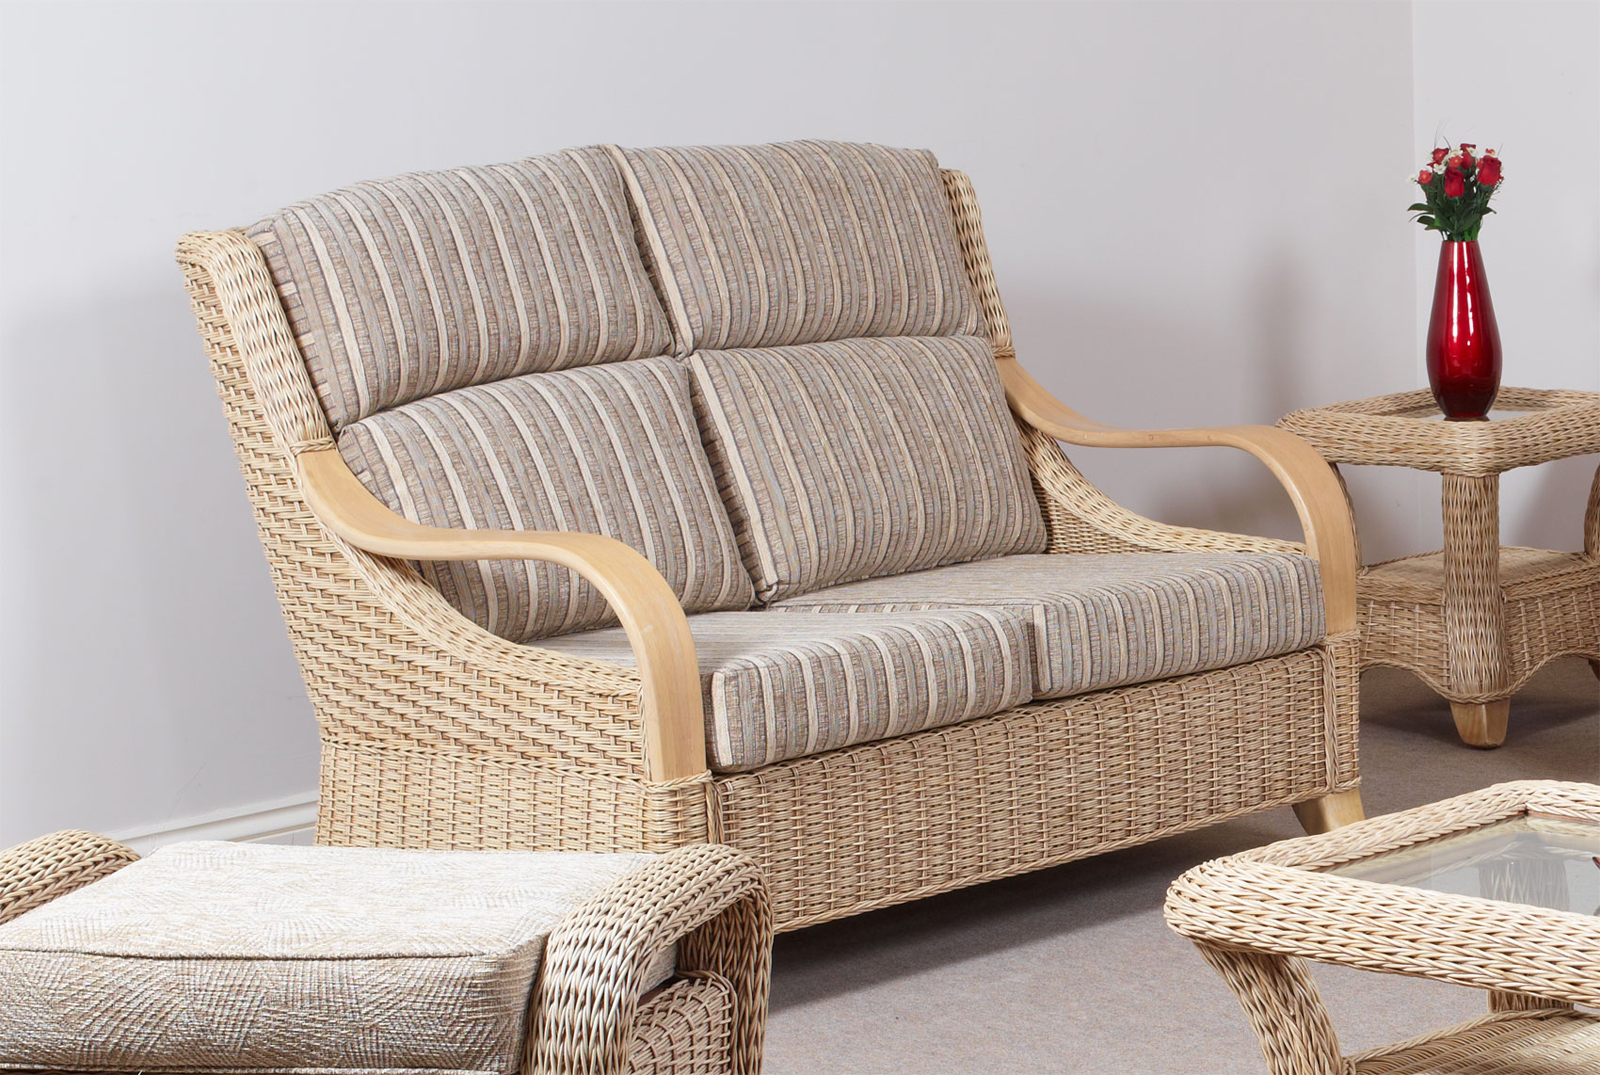 Cane And Rattan Conservatory Furniture Hilton Conservatory Cane Furniture Wicker Two Seater Sofa Settee